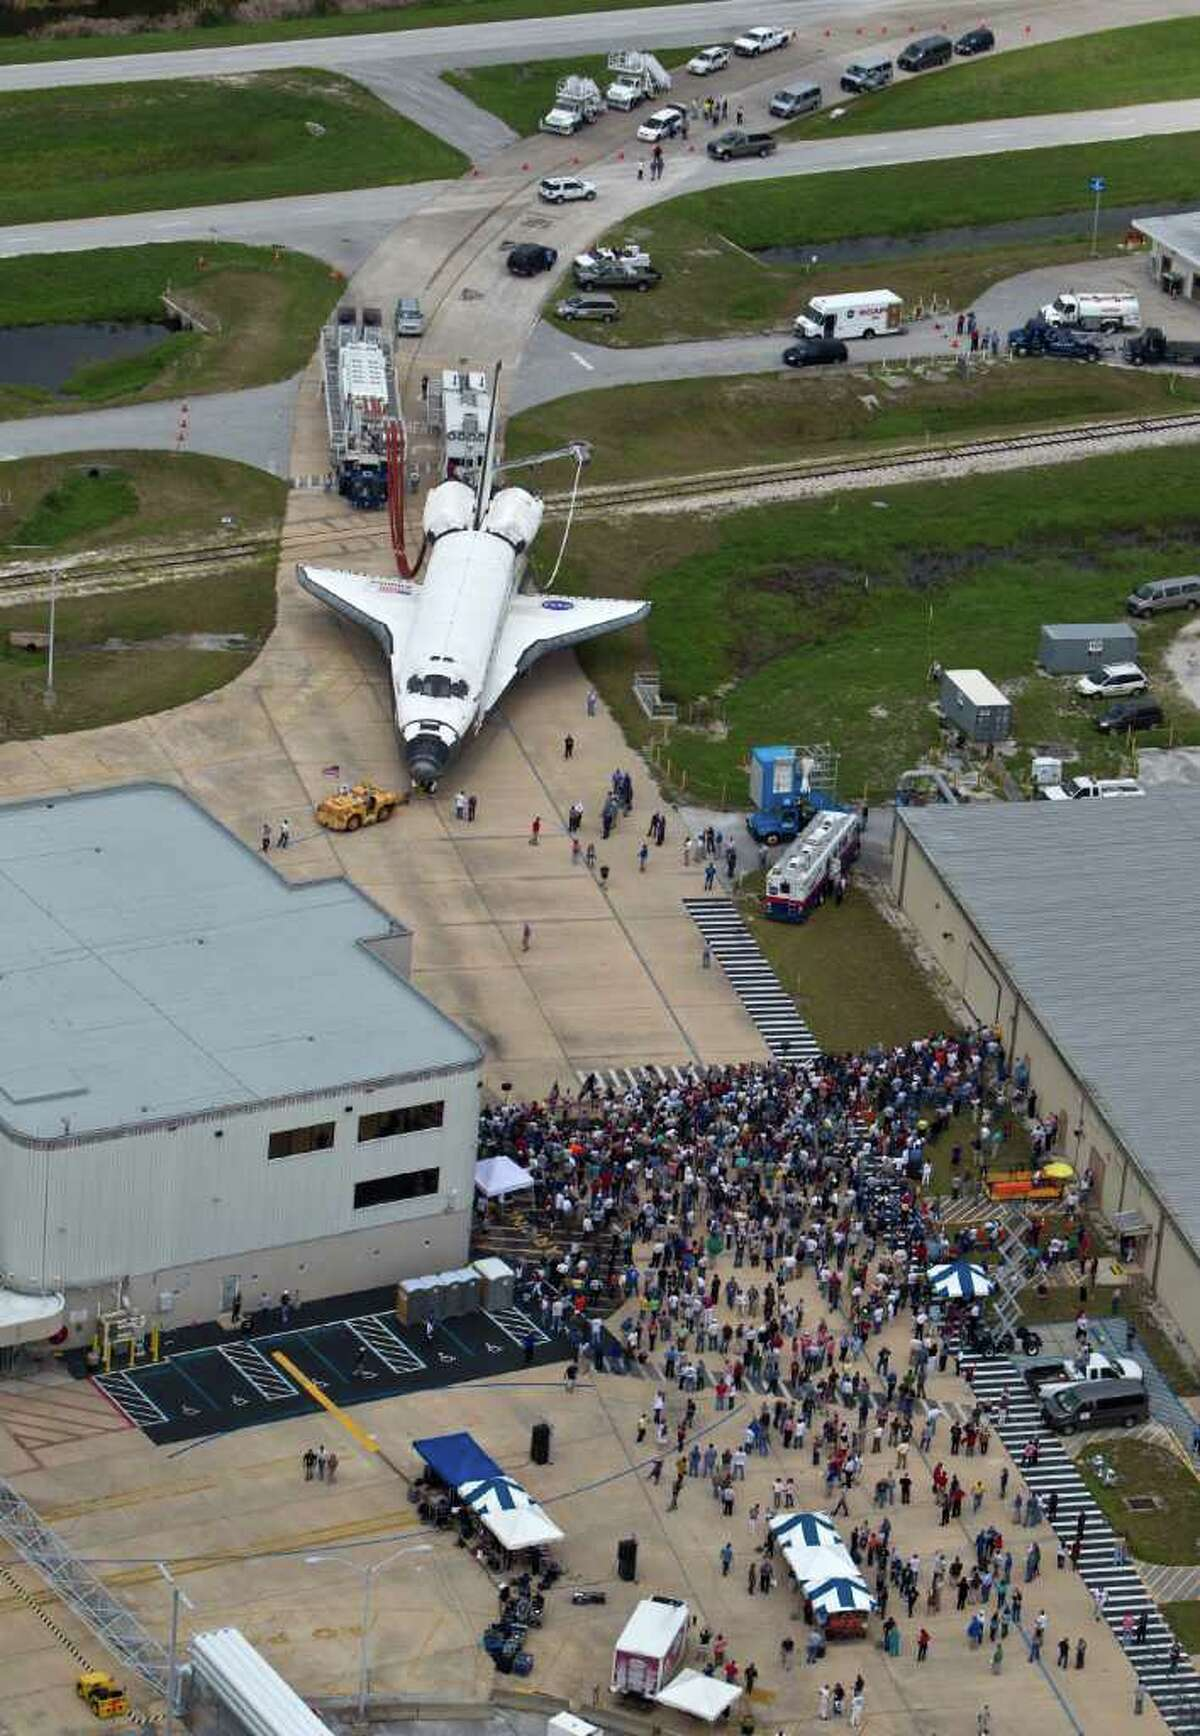 The space shuttle Atlantis is towed from the landing strip to the OPF ( Orbiter Processing Facility after completing the final mission of the space shuttle program Thursday, July 21, 2011, in Kennedy Space Center. ( James Nielsen / Chronicle )